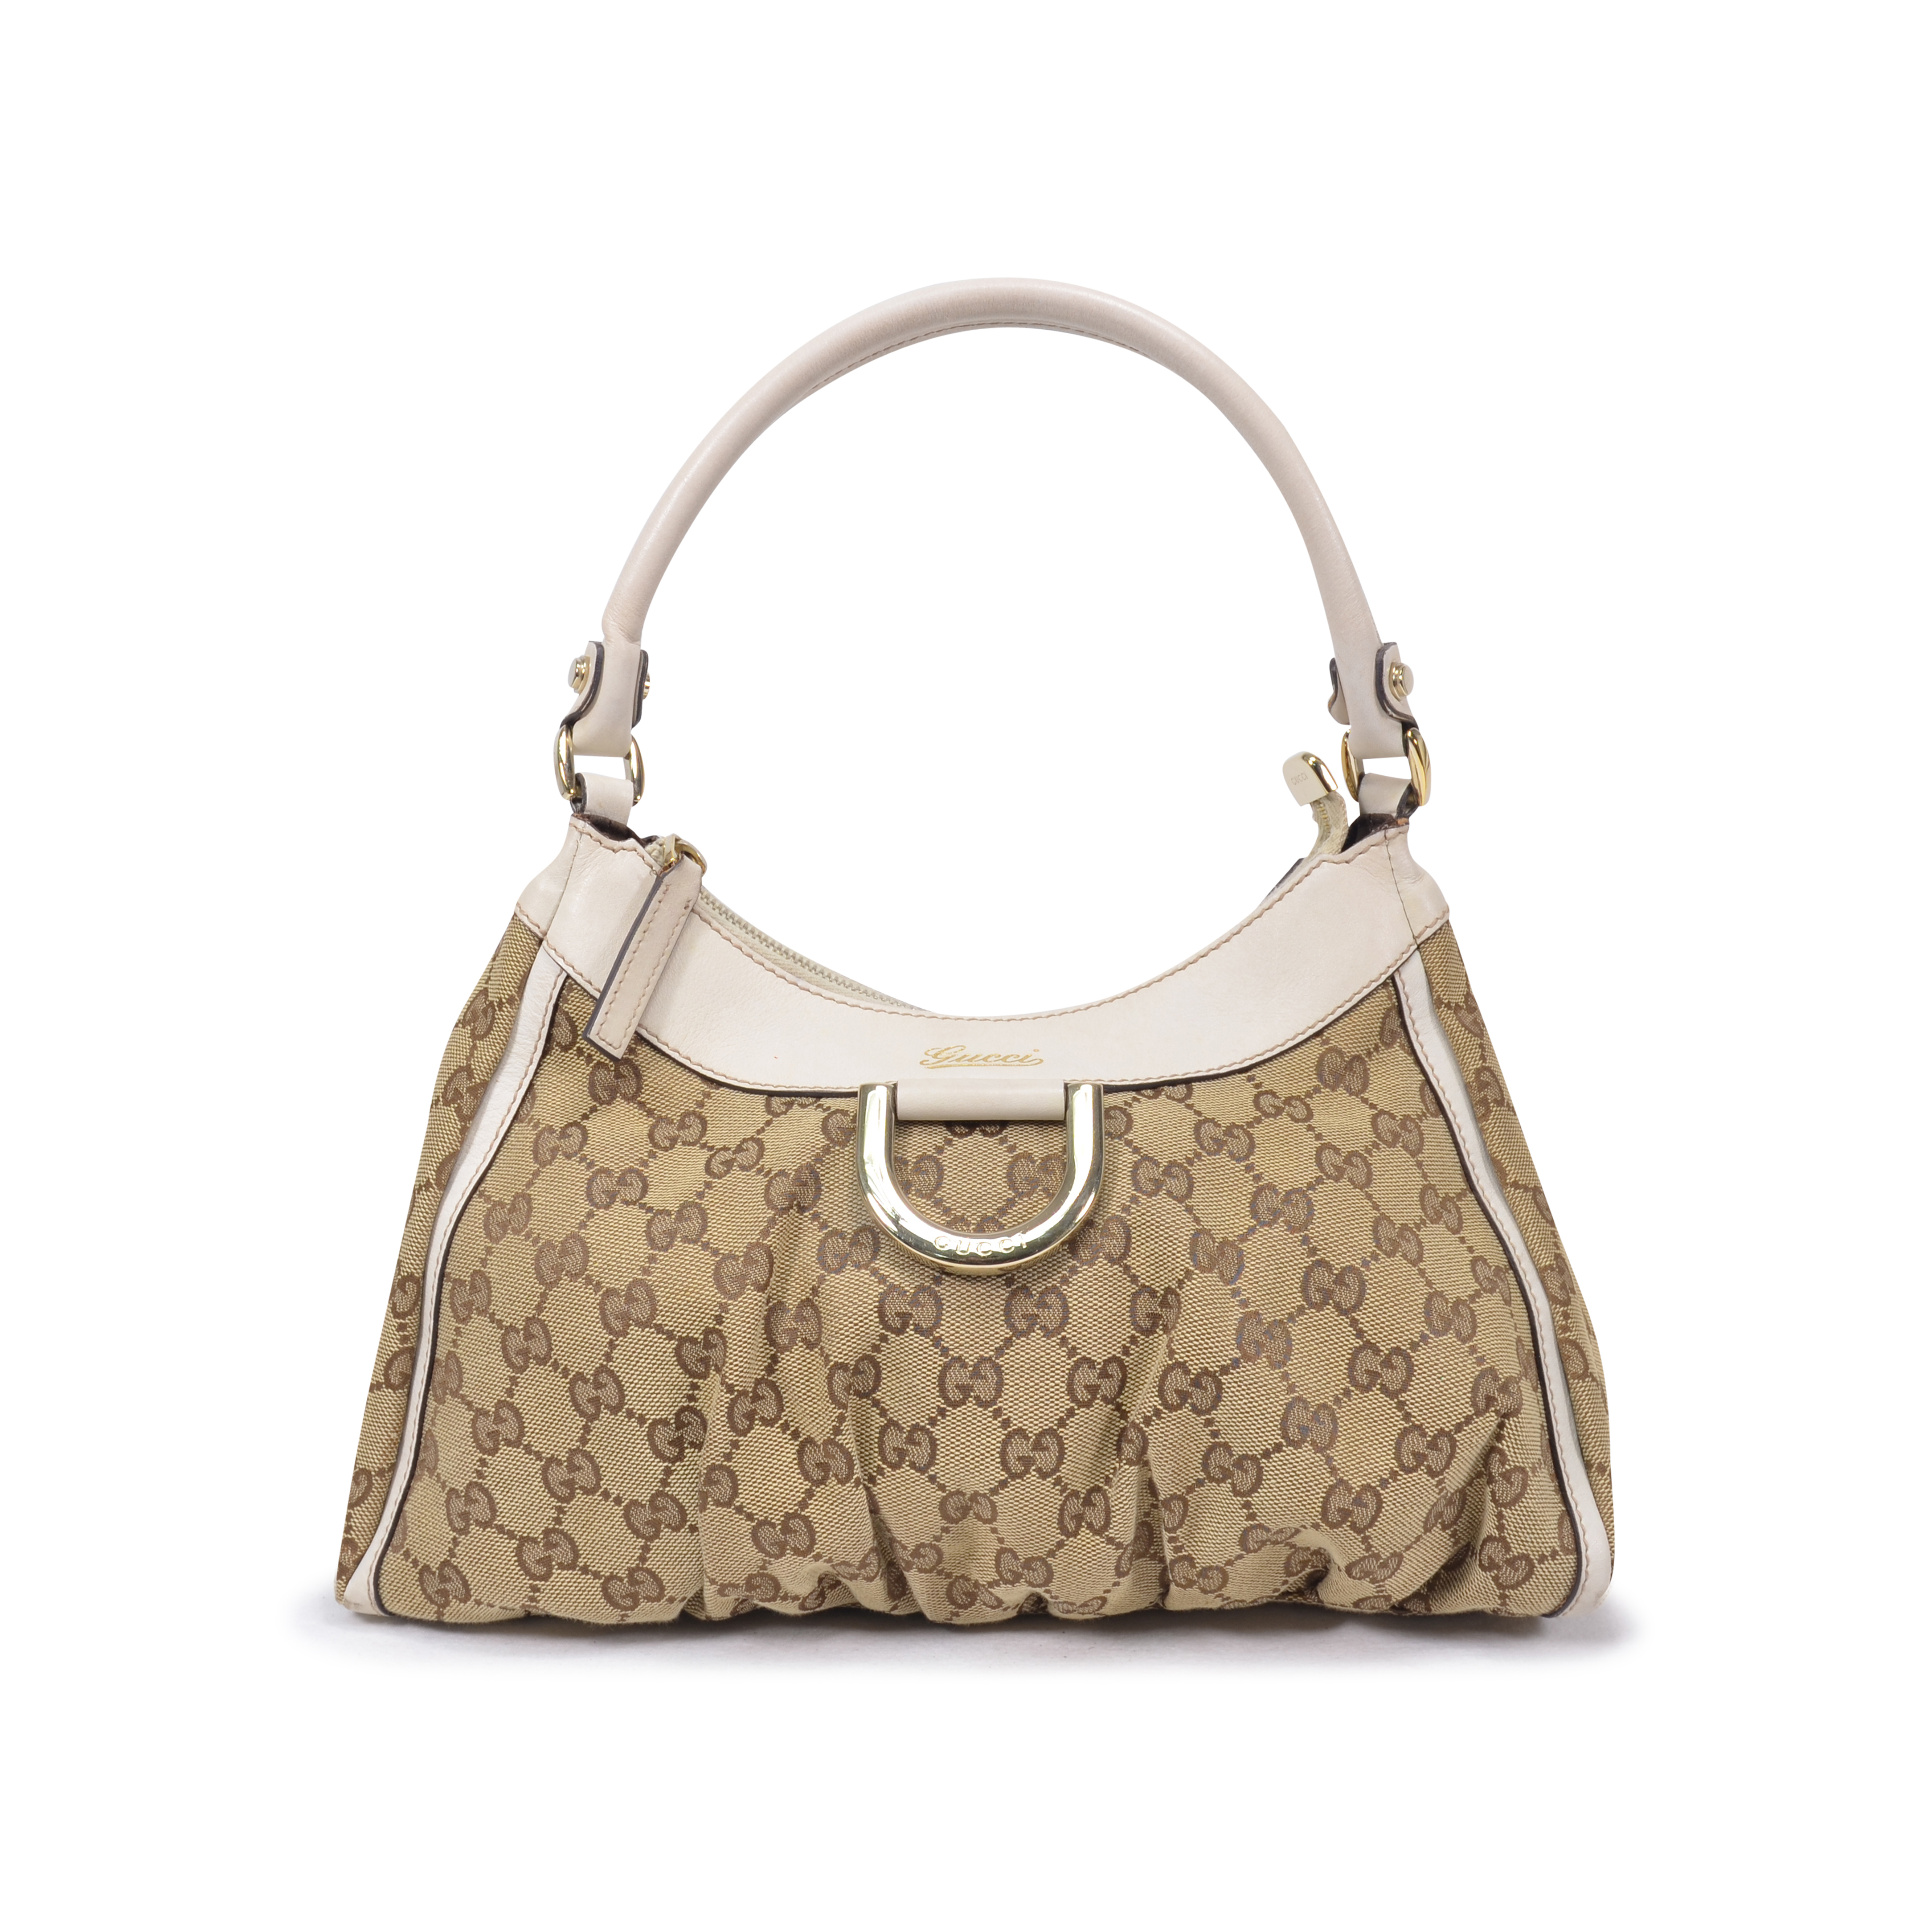 fce3867a079d Authentic Second Hand Gucci Monogram Canvas Shoulder Bag (PSS-325-00007) |  THE FIFTH COLLECTION